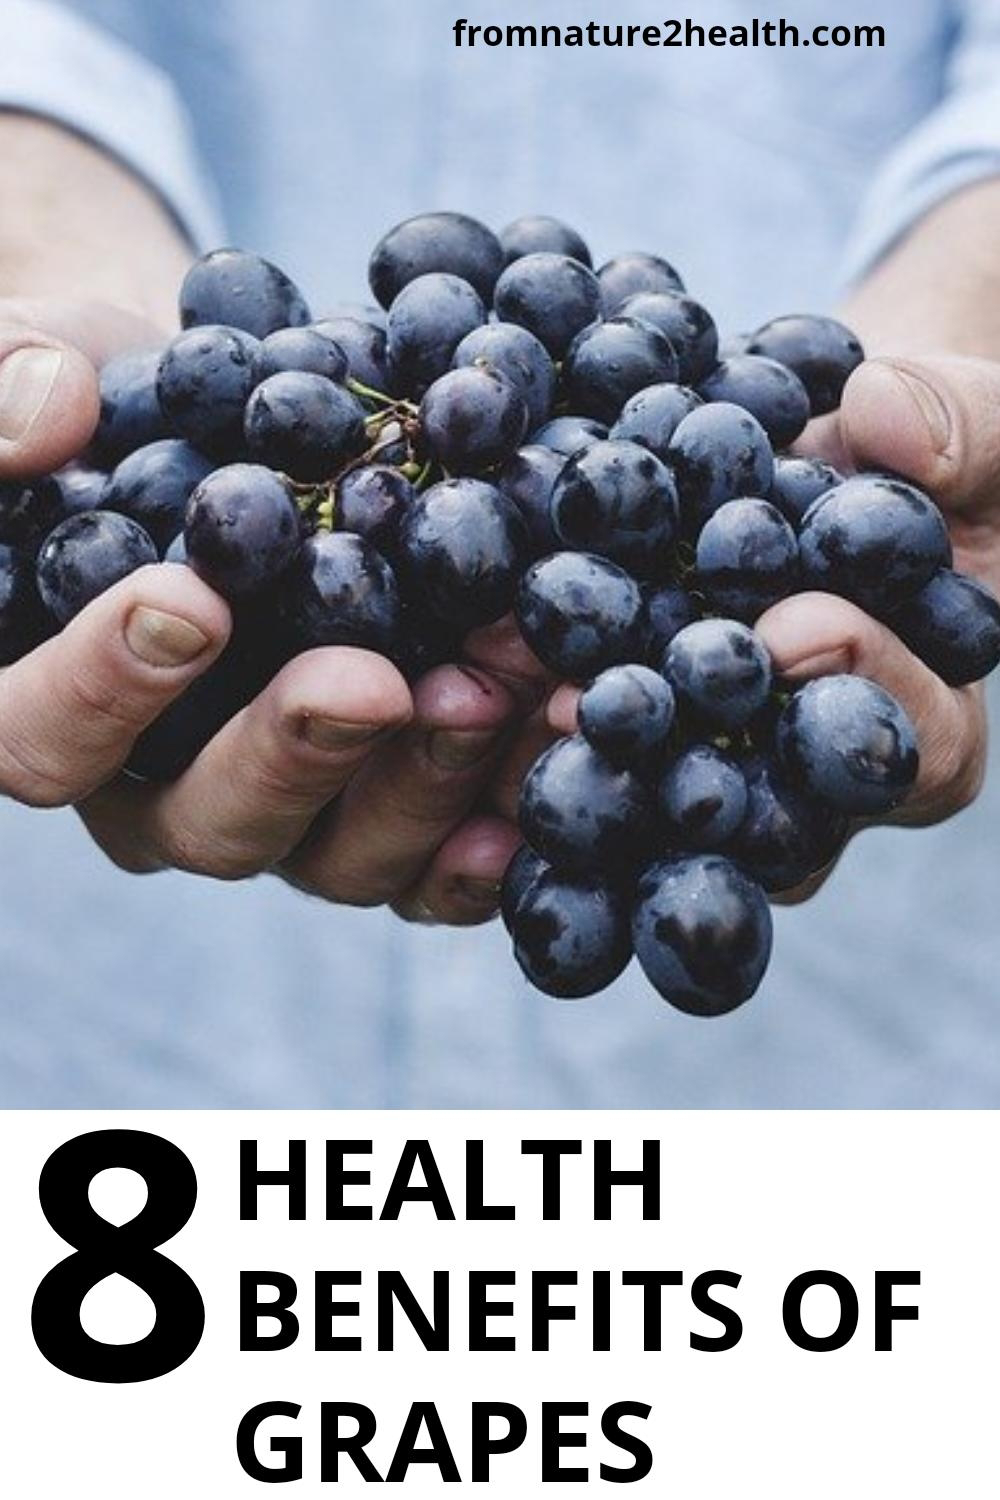 Benefit Grapes for Anti Aging, Cancer, Diabetes, Eye Health and Hypertension